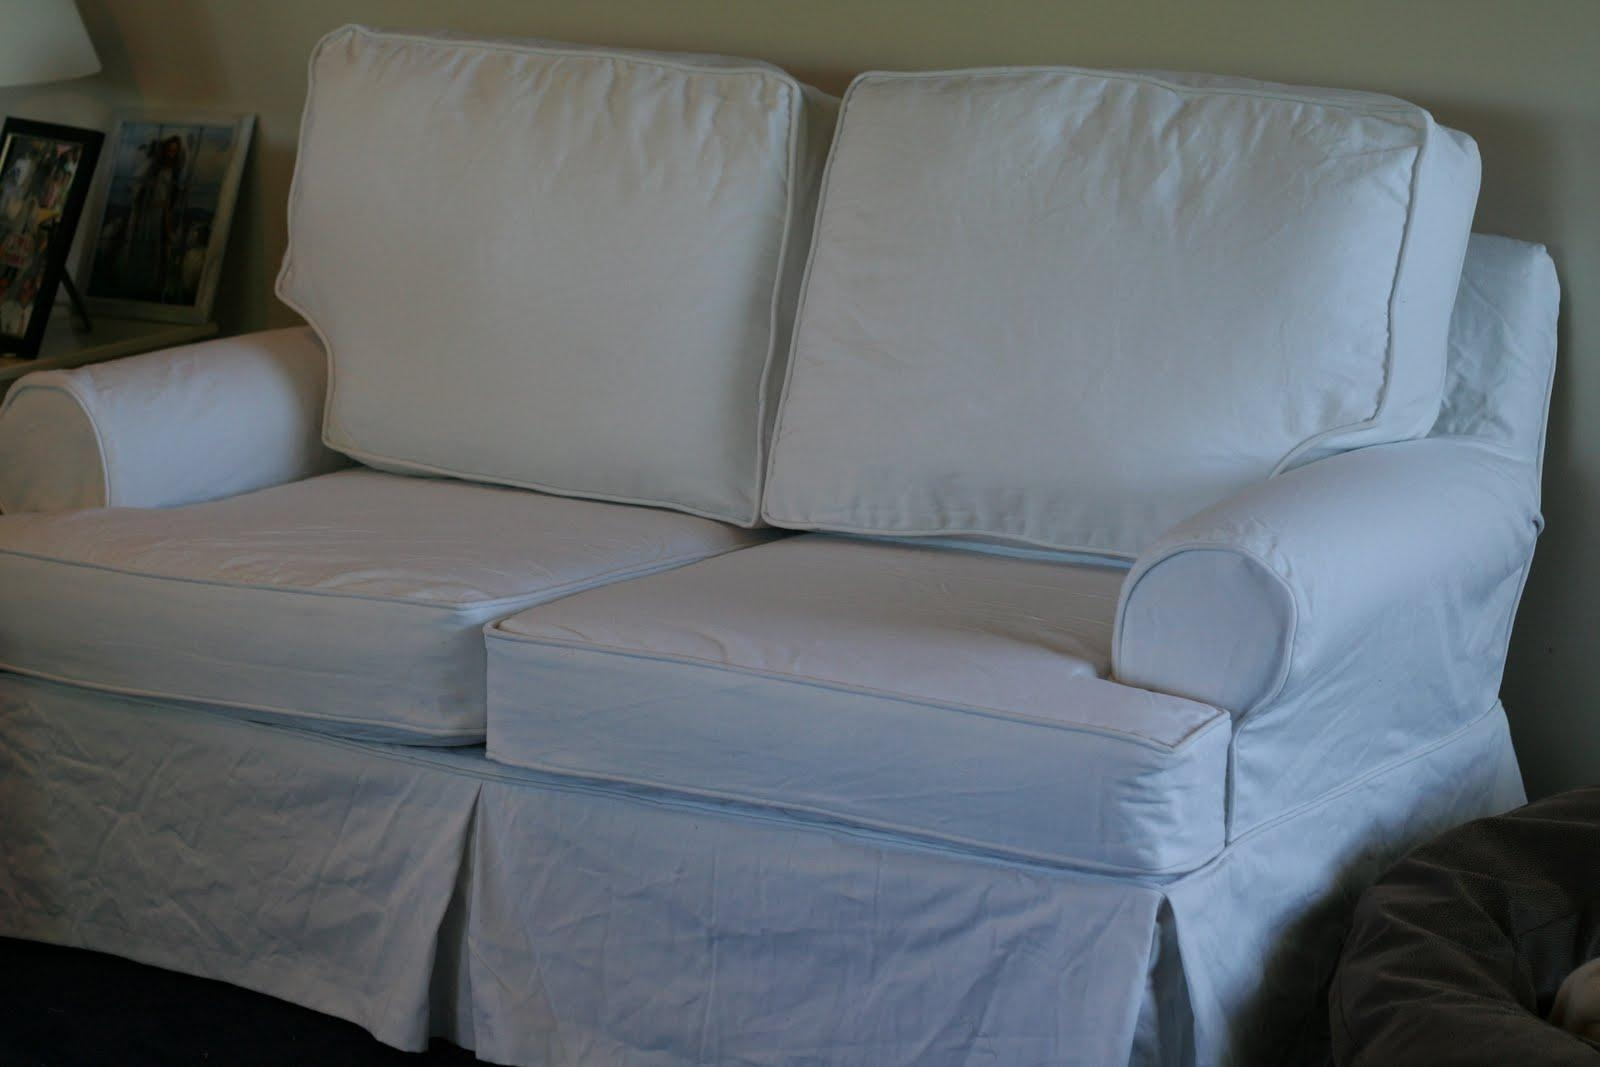 White Denim Slipcover Couches | Tehranmix Decoration With Regard To Denim Loveseats (Image 20 of 20)